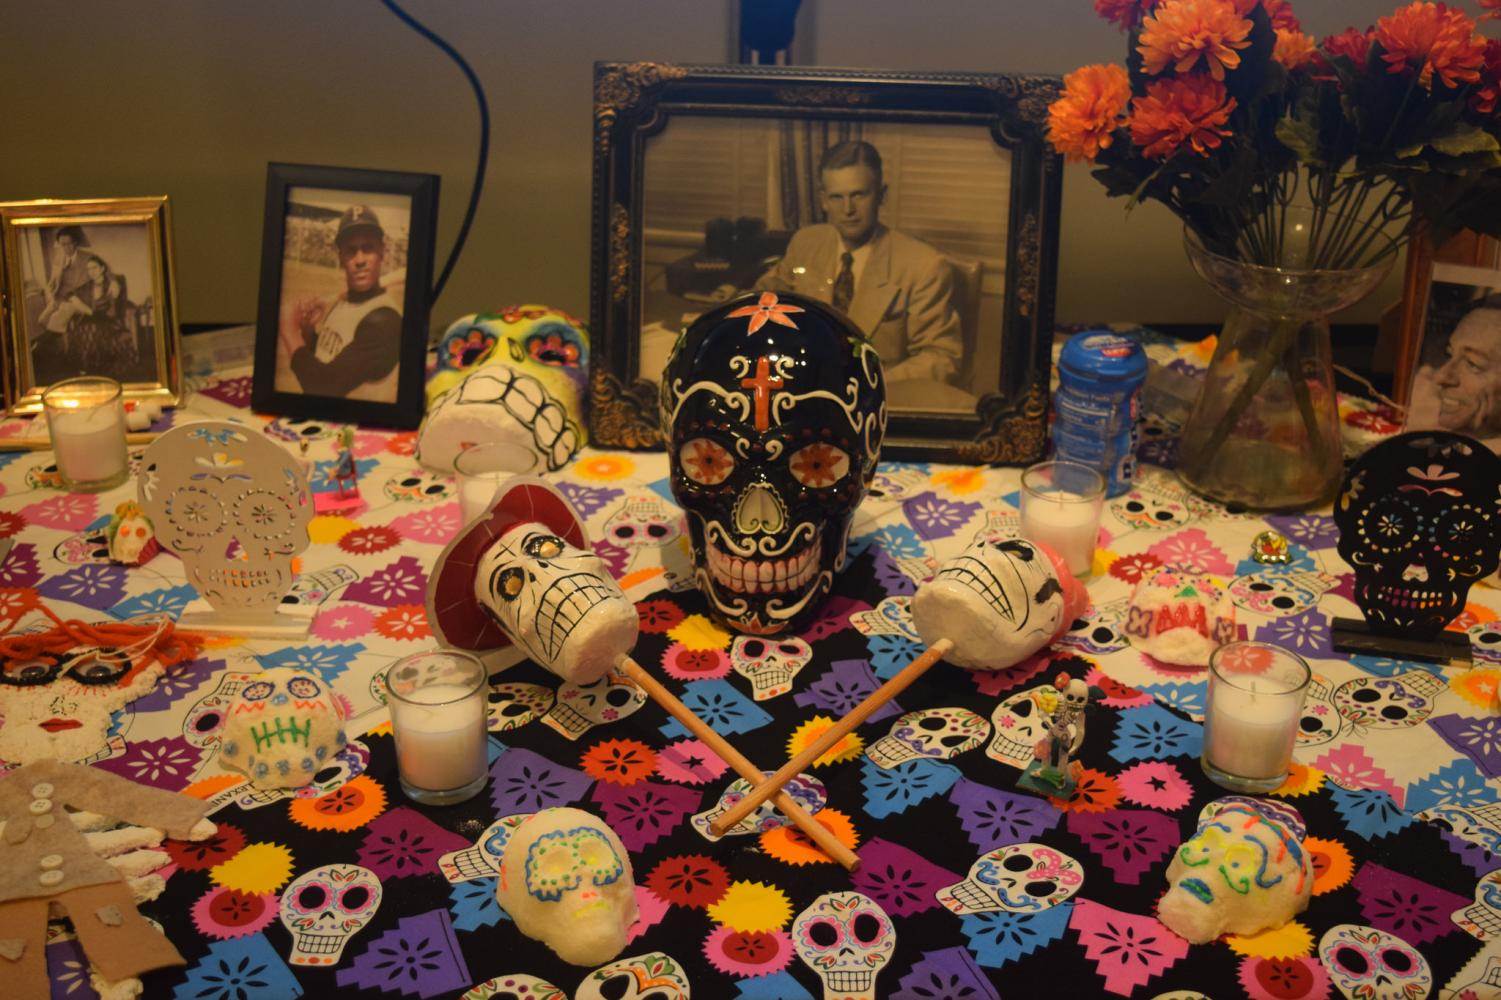 Sugar skulls, photographs and other objects covered the ofrenda outside of the Glassell Gallery.